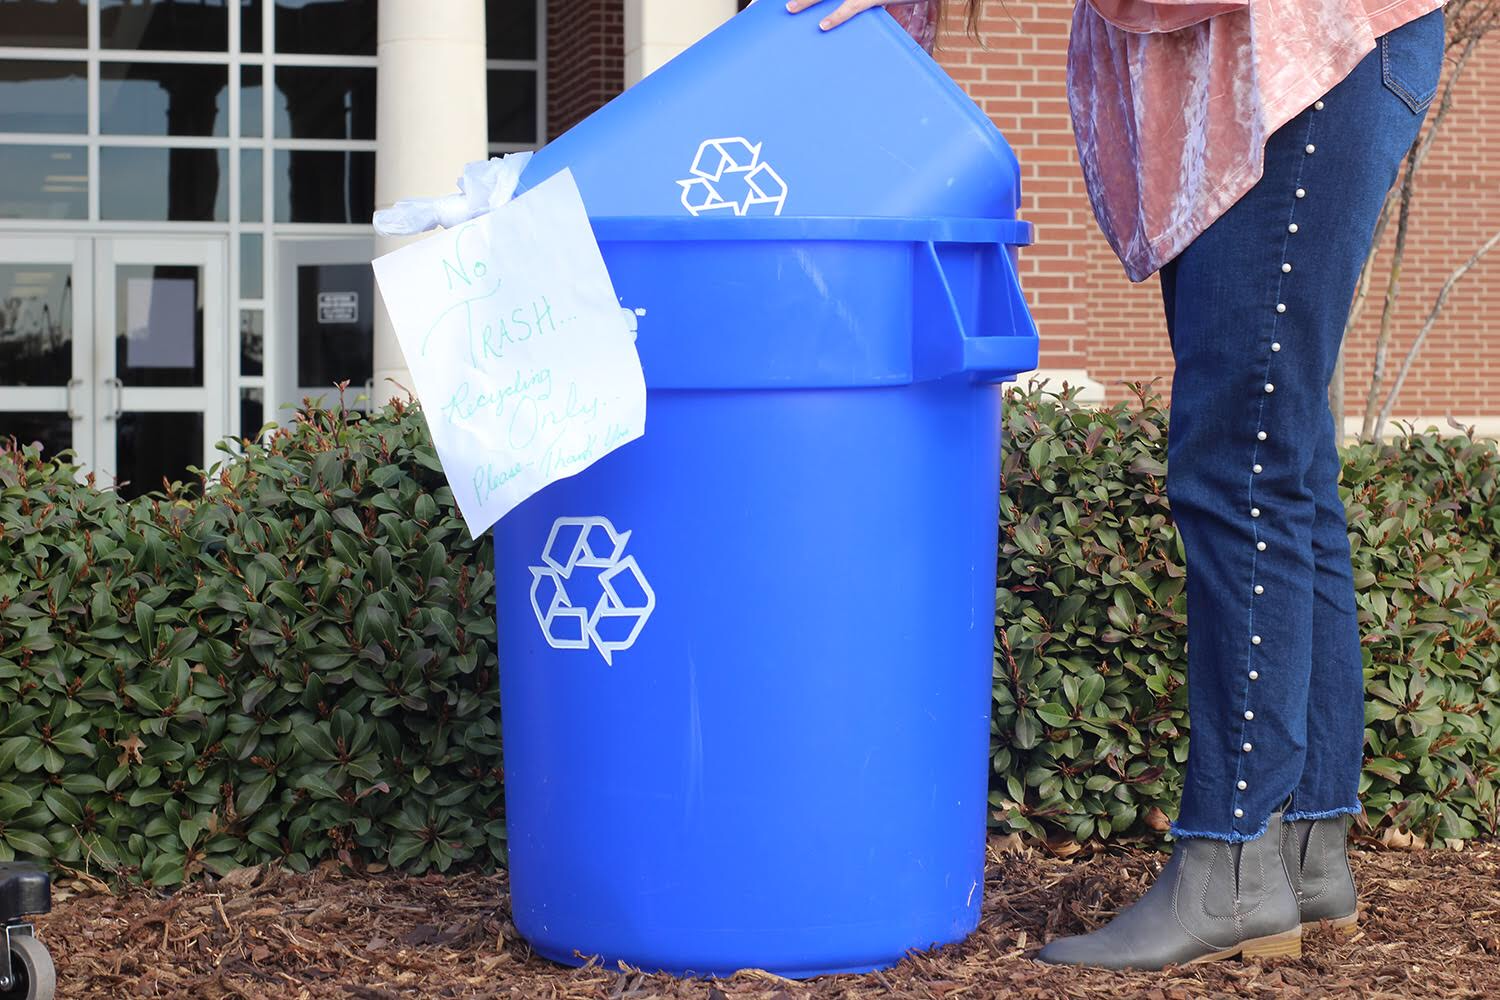 Sophomore Nikki Hansen collects recycling and puts it in a recycling bin labeled